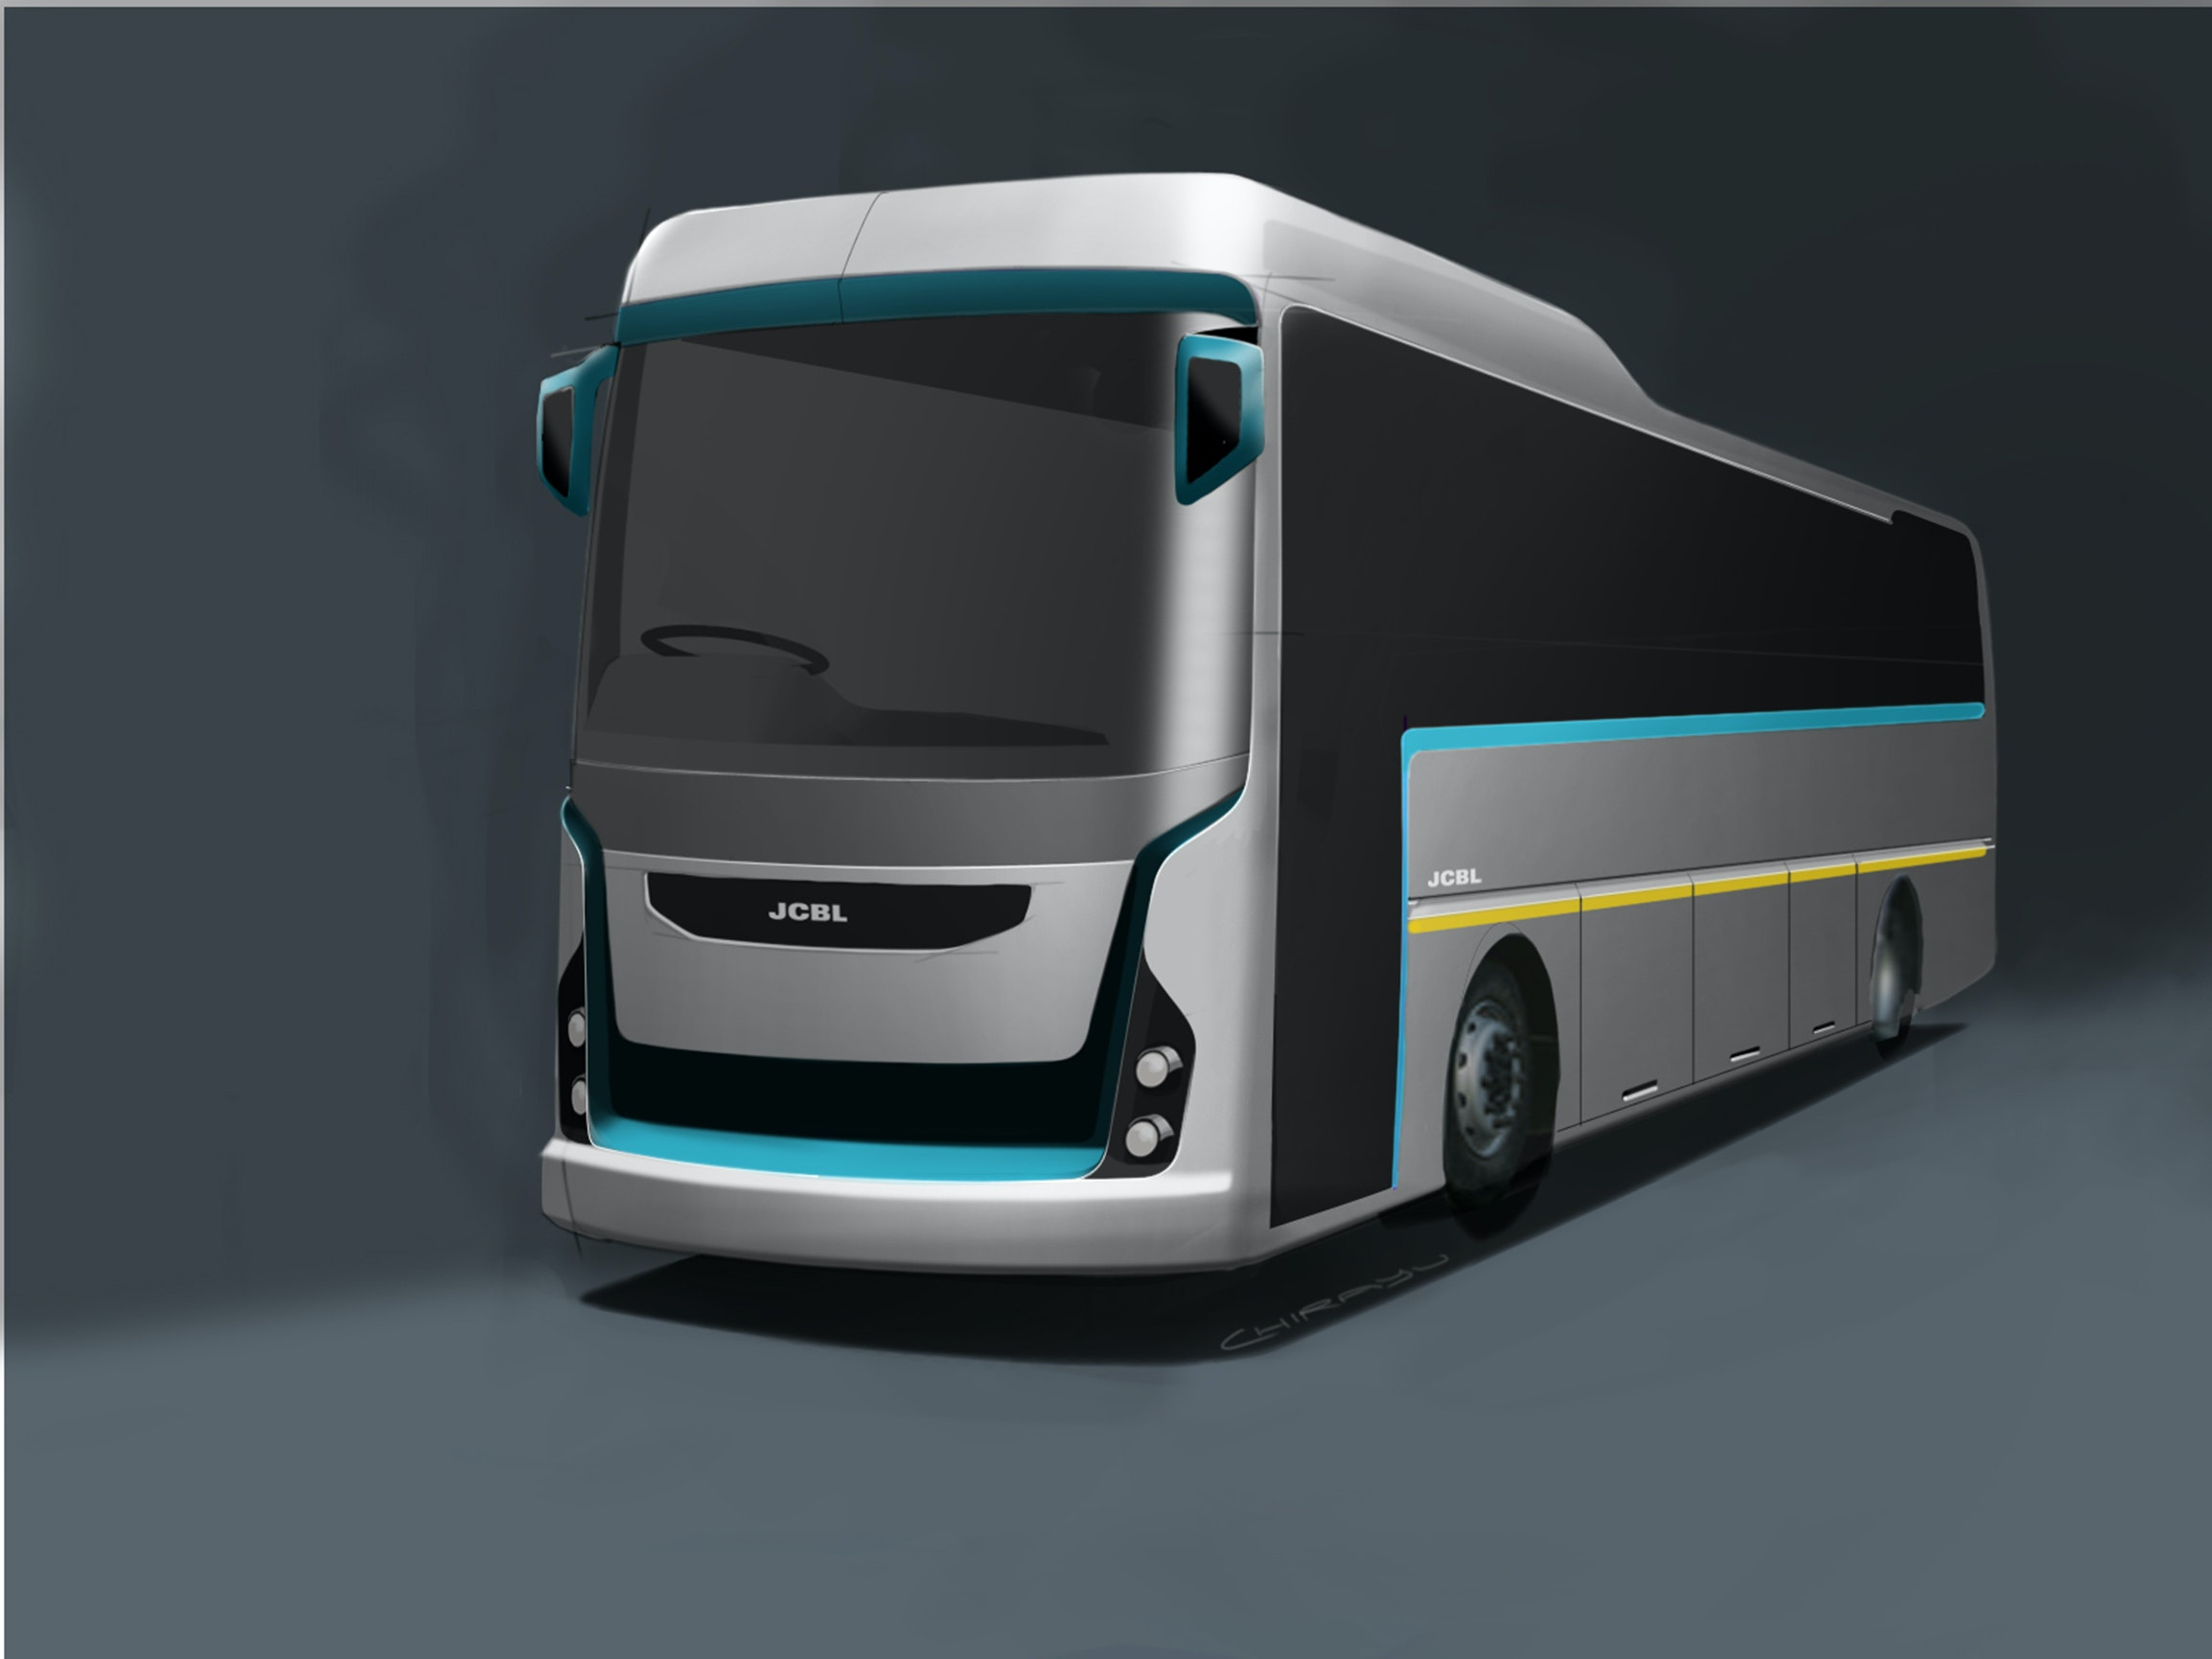 dfi designs new prototypes for bus and seat design